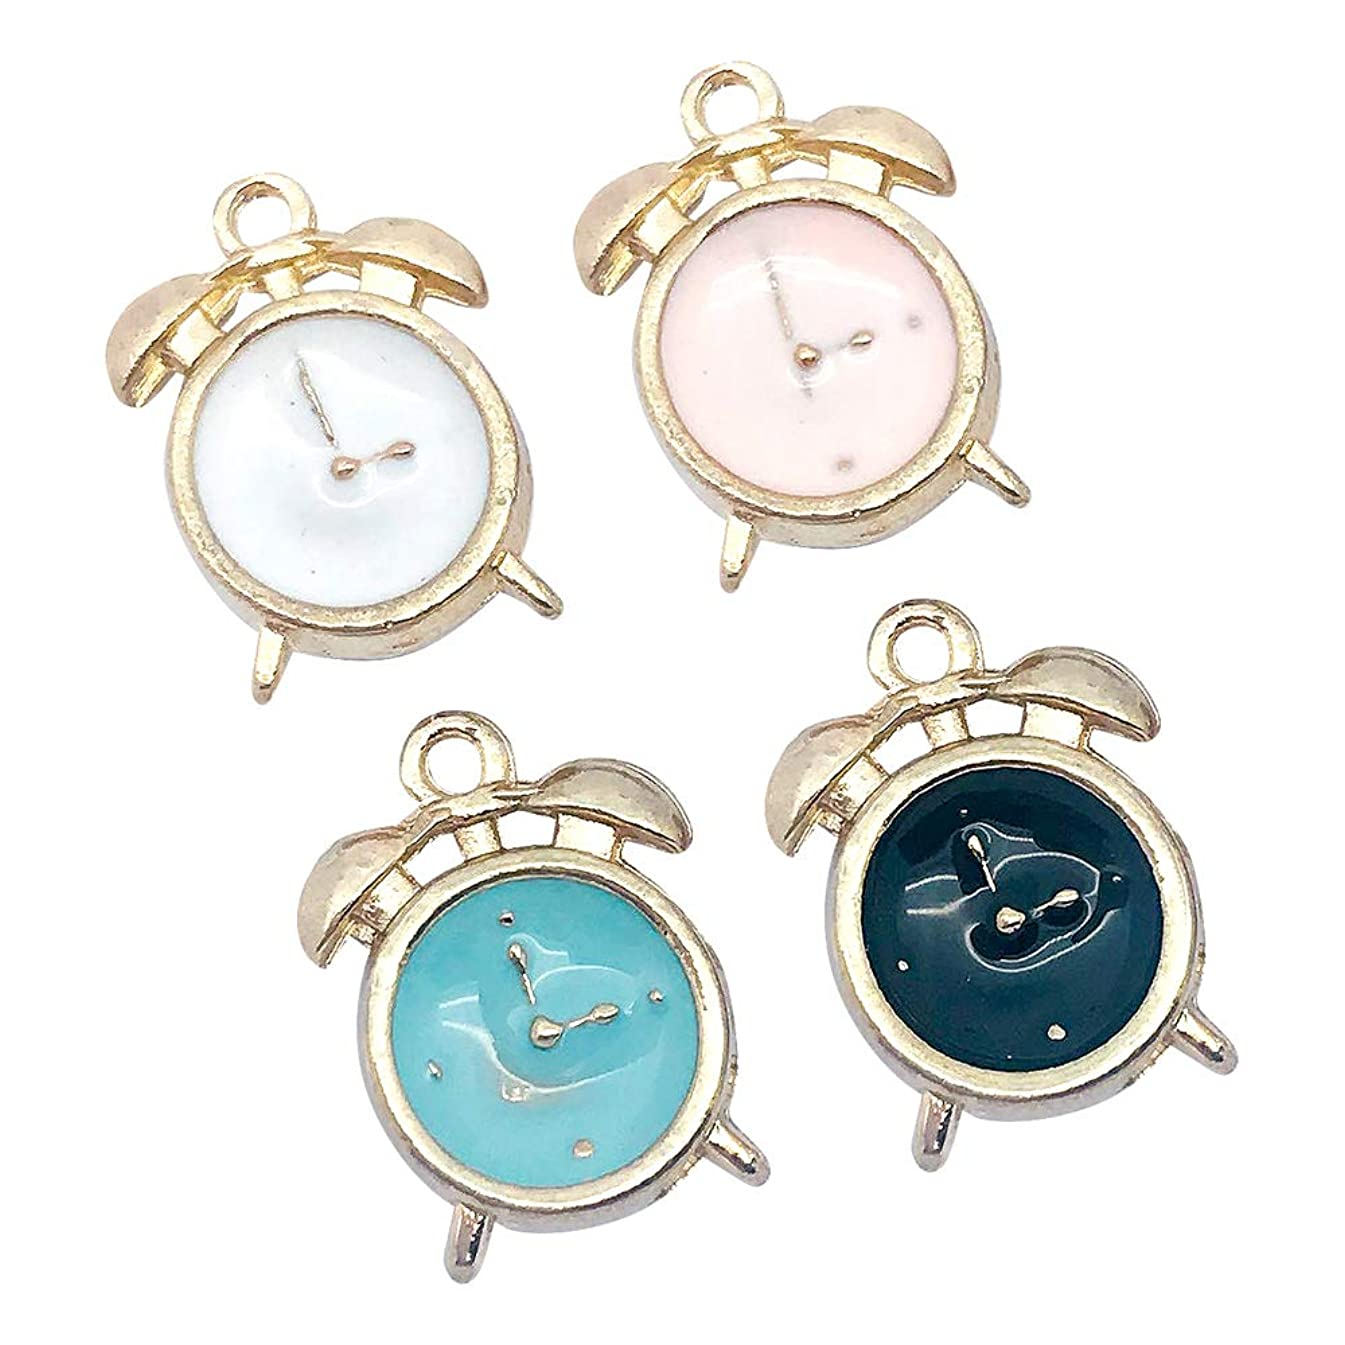 M295-E 8pcs New Cute Assorted Little Alarm Clock Bracelet Charms Pendants Wholesale